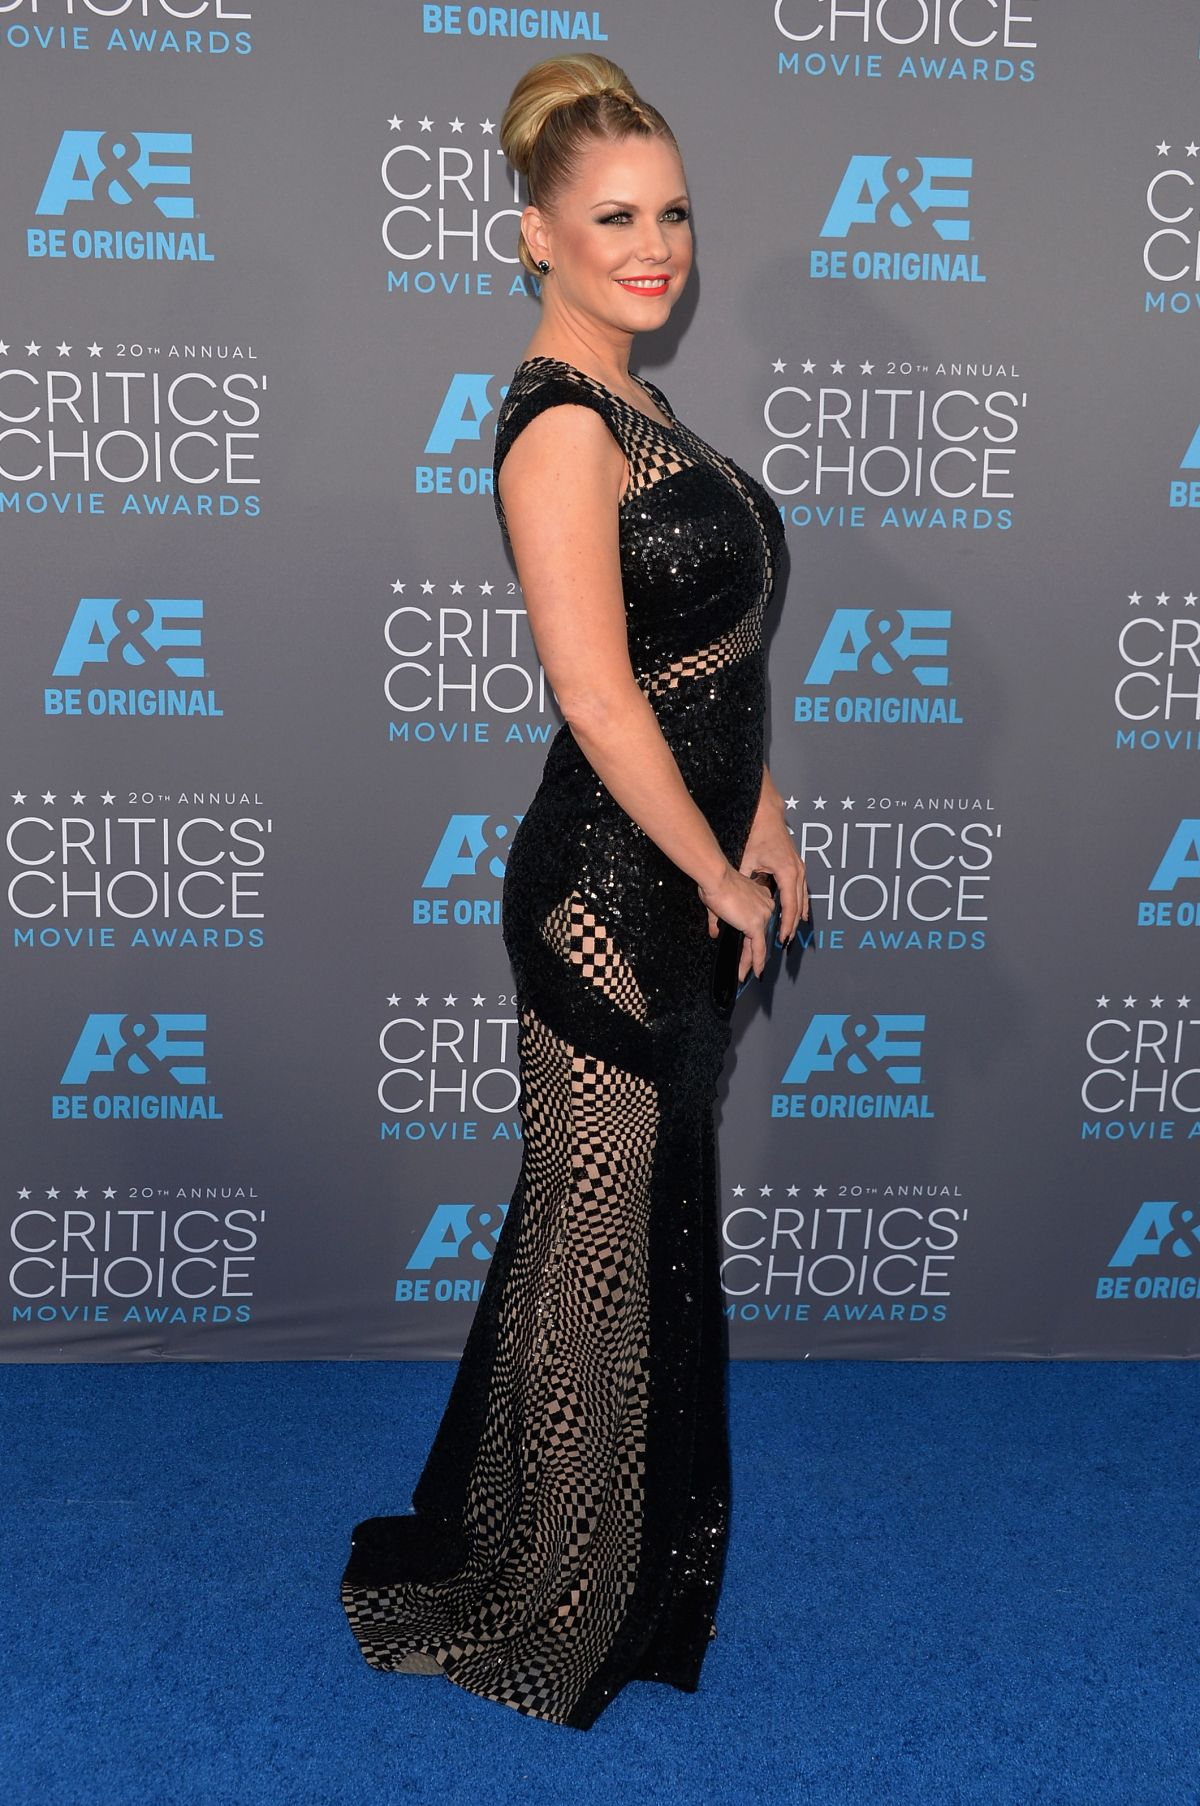 carrie-keagan-at-2015-critics-choice-movie-awards-in-los-angeles_21